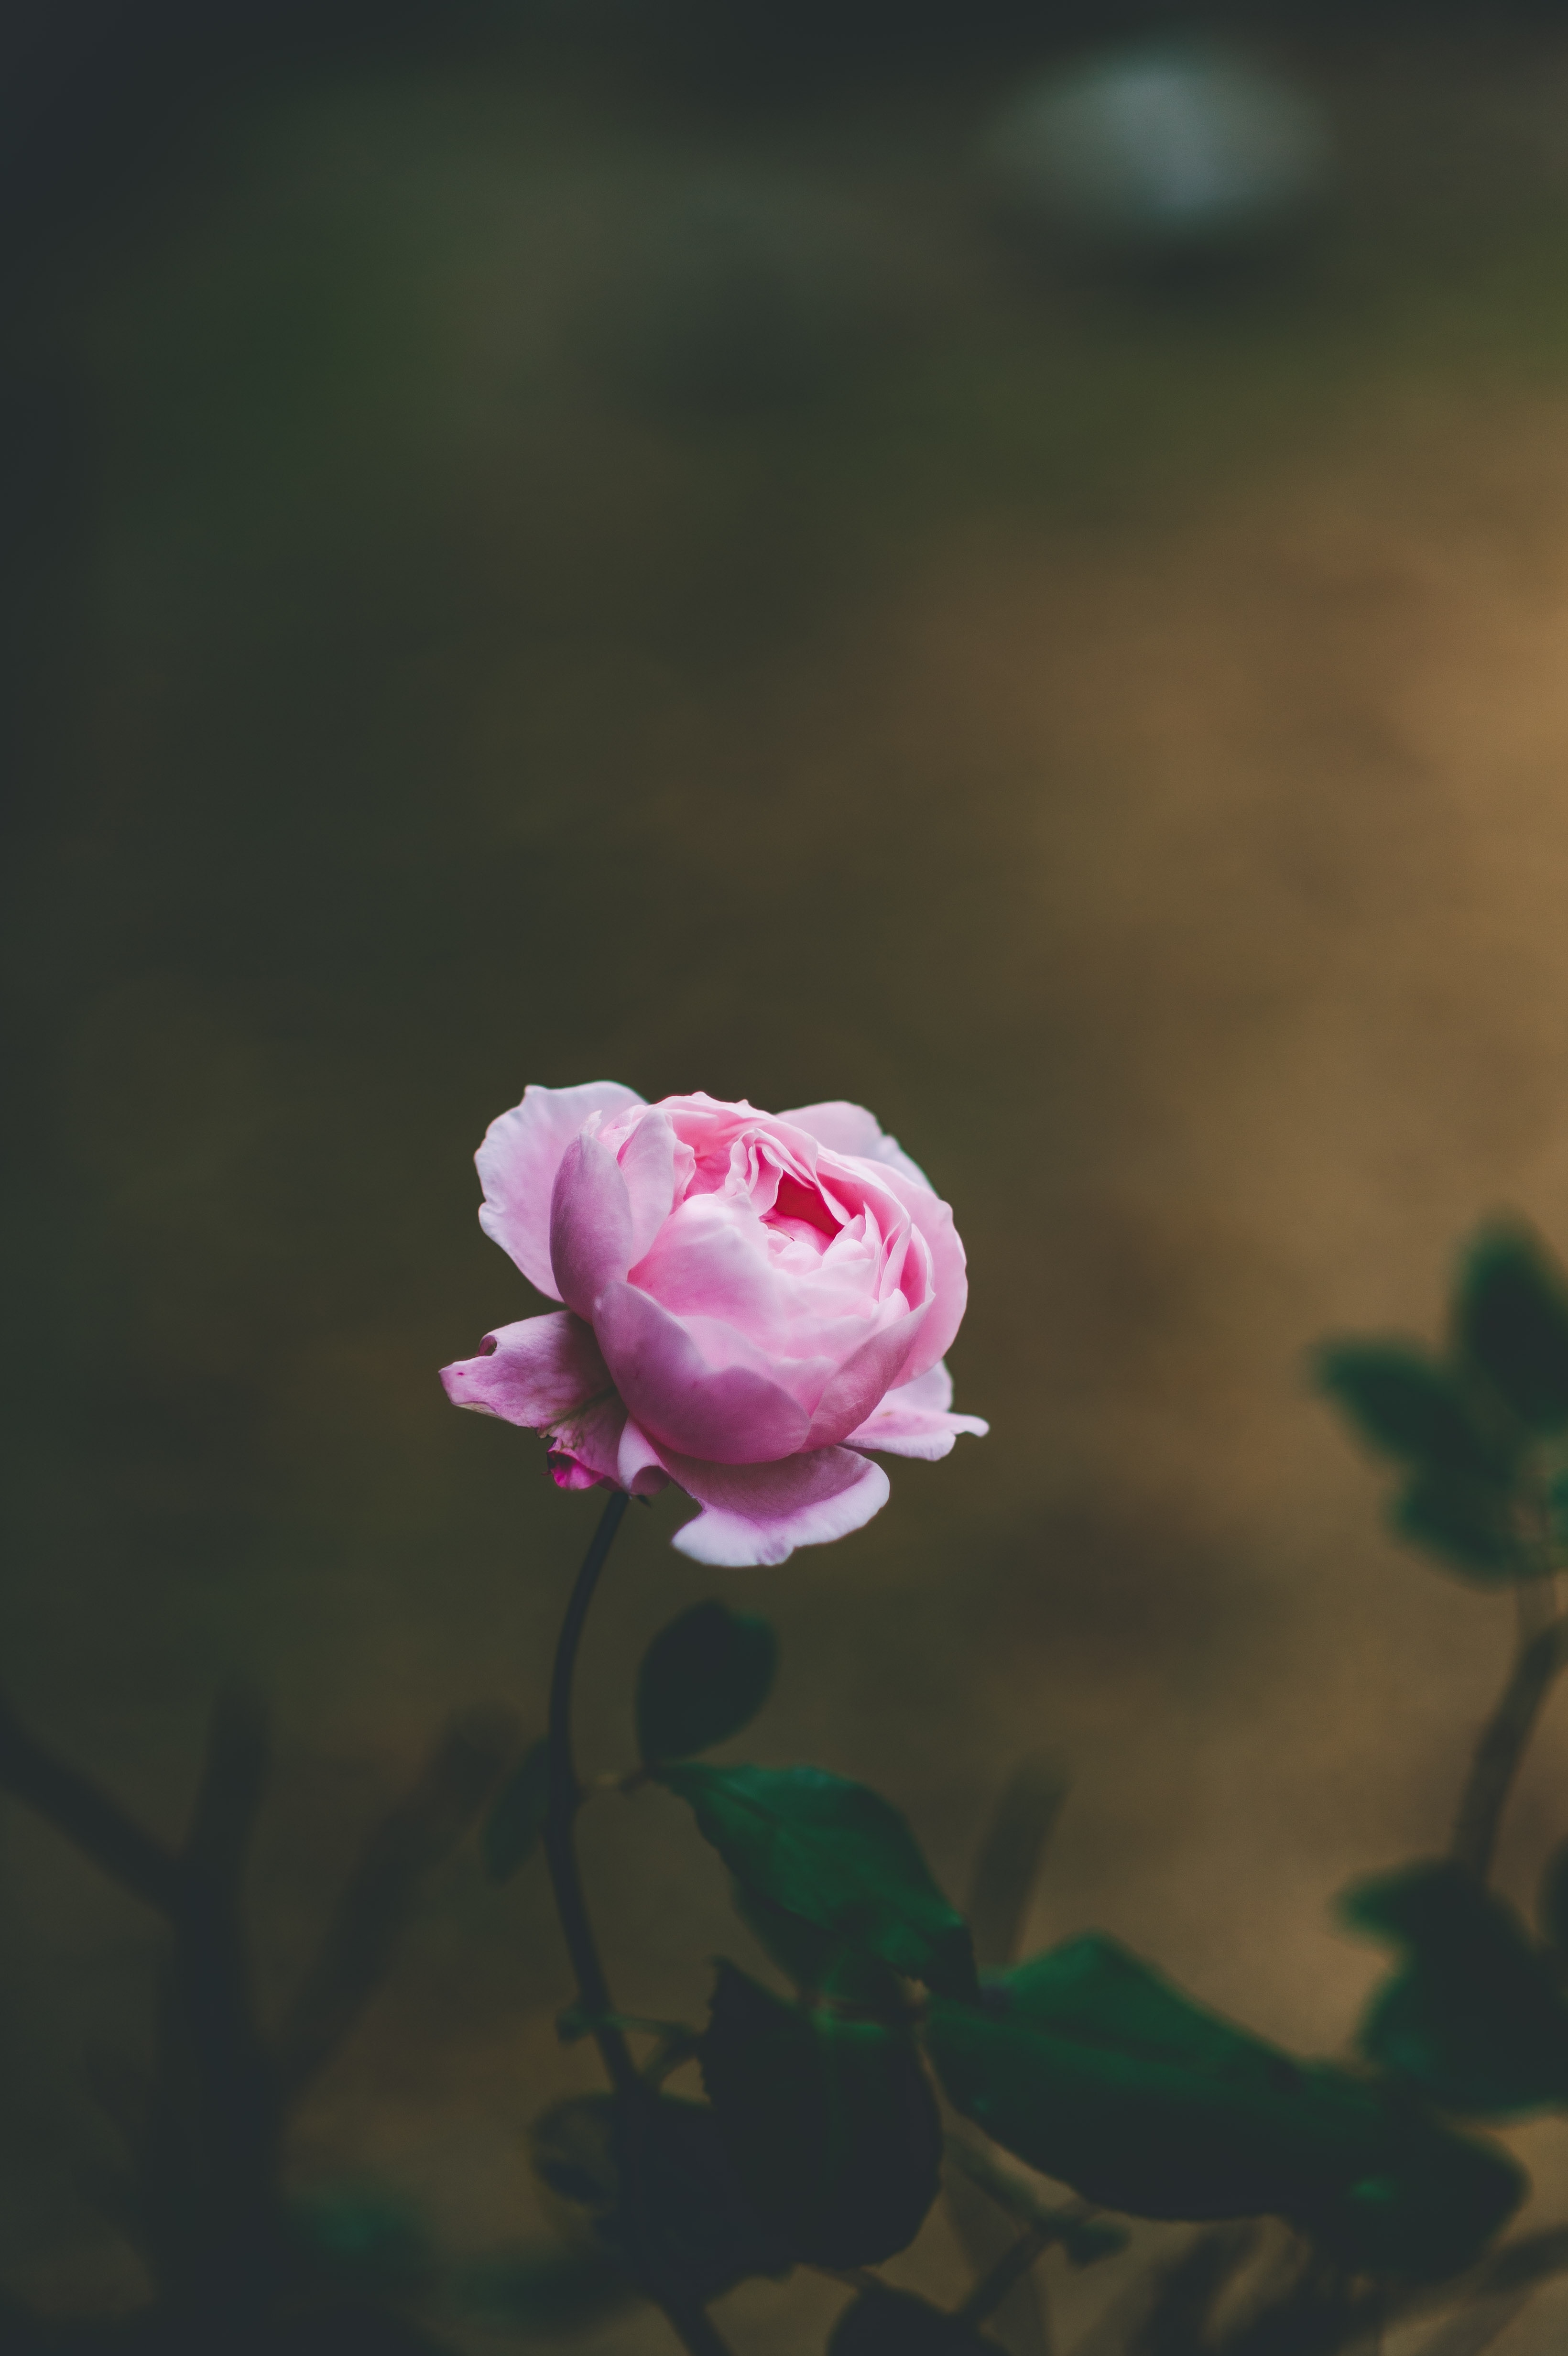 129857 Screensavers and Wallpapers Beautiful for phone. Download Flowers, Flower, Rose Flower, Rose, Beautiful, Tender, Blooms, Light Pink pictures for free